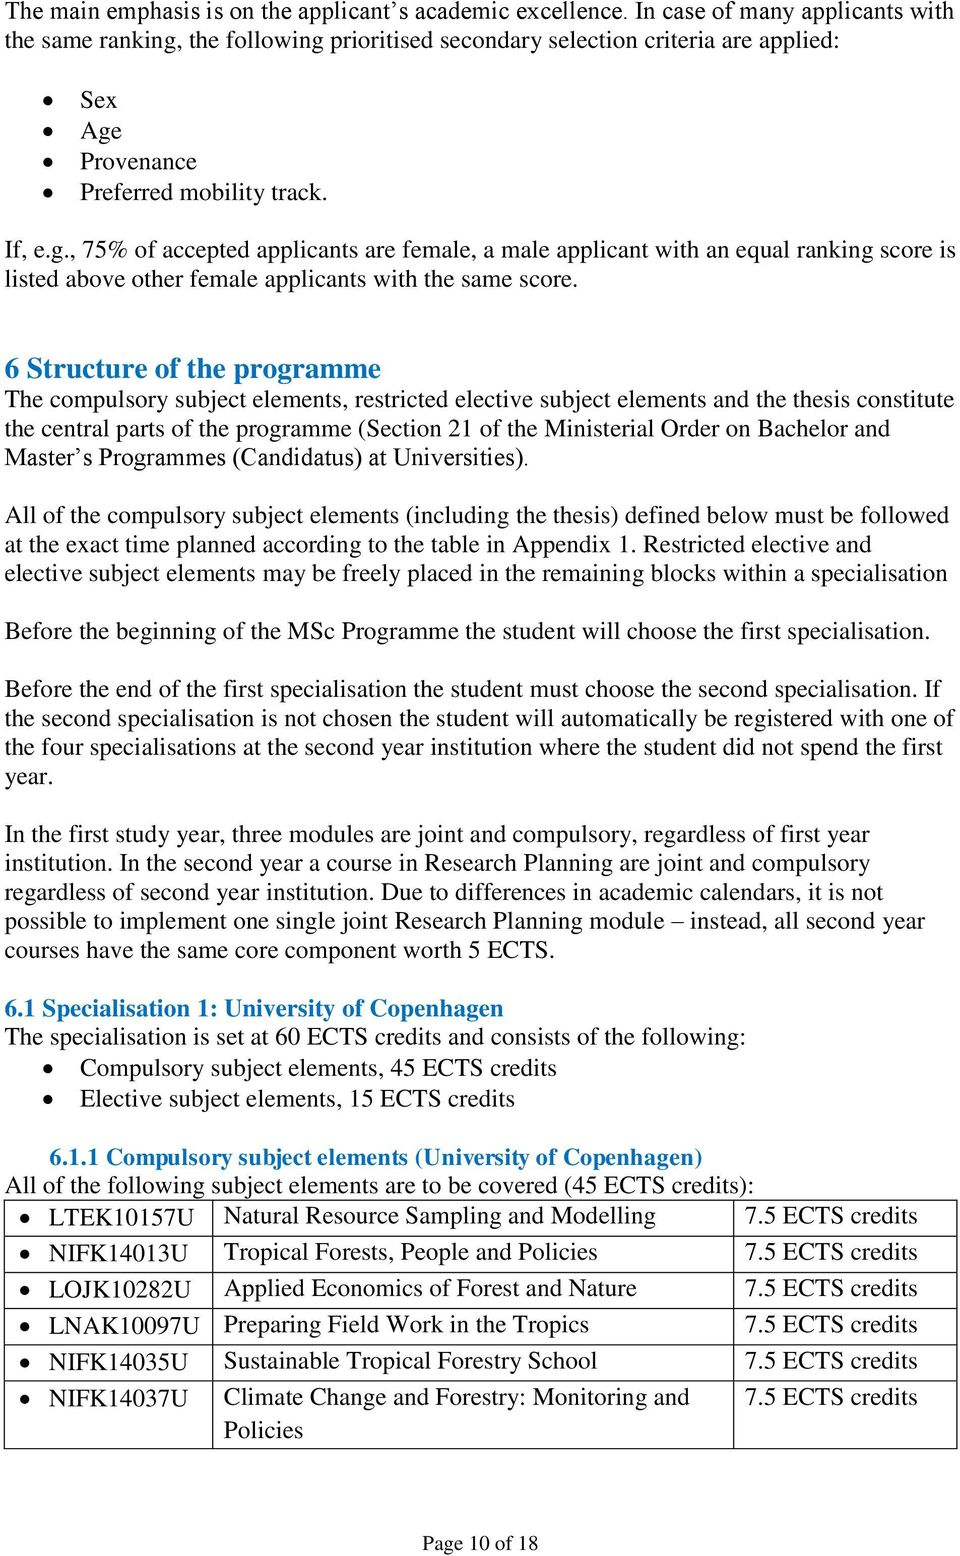 6 Structure of the programme The compulsory subject elements, restricted elective subject elements and the thesis constitute the central parts of the programme (Section 21 of the Ministerial Order on